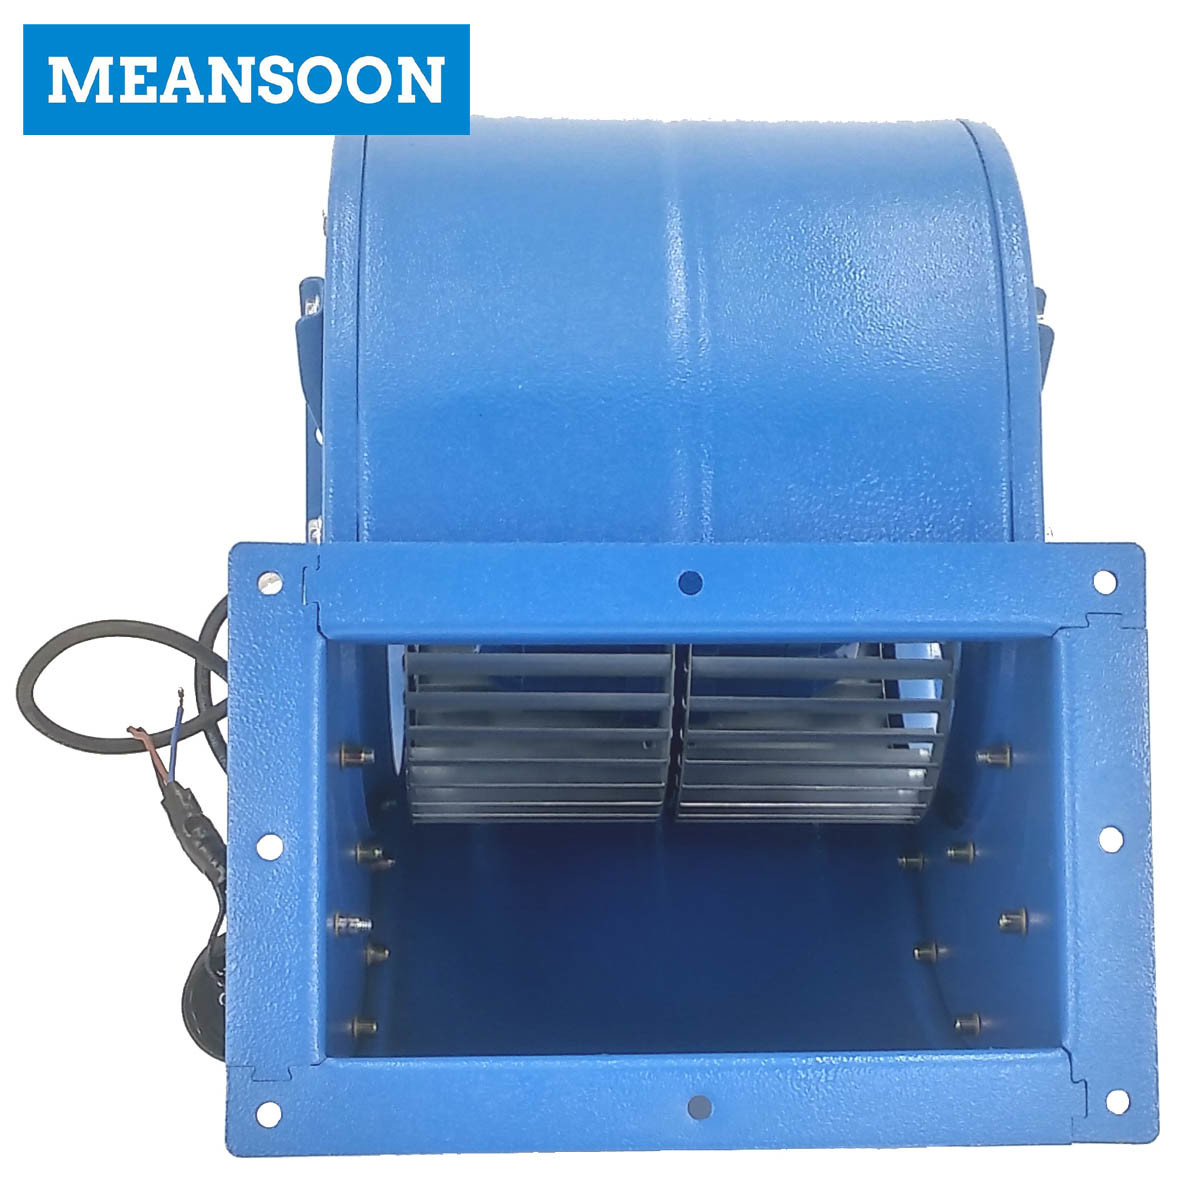 280 Dual Inlet Centrifugal Ventilator for Exhaust